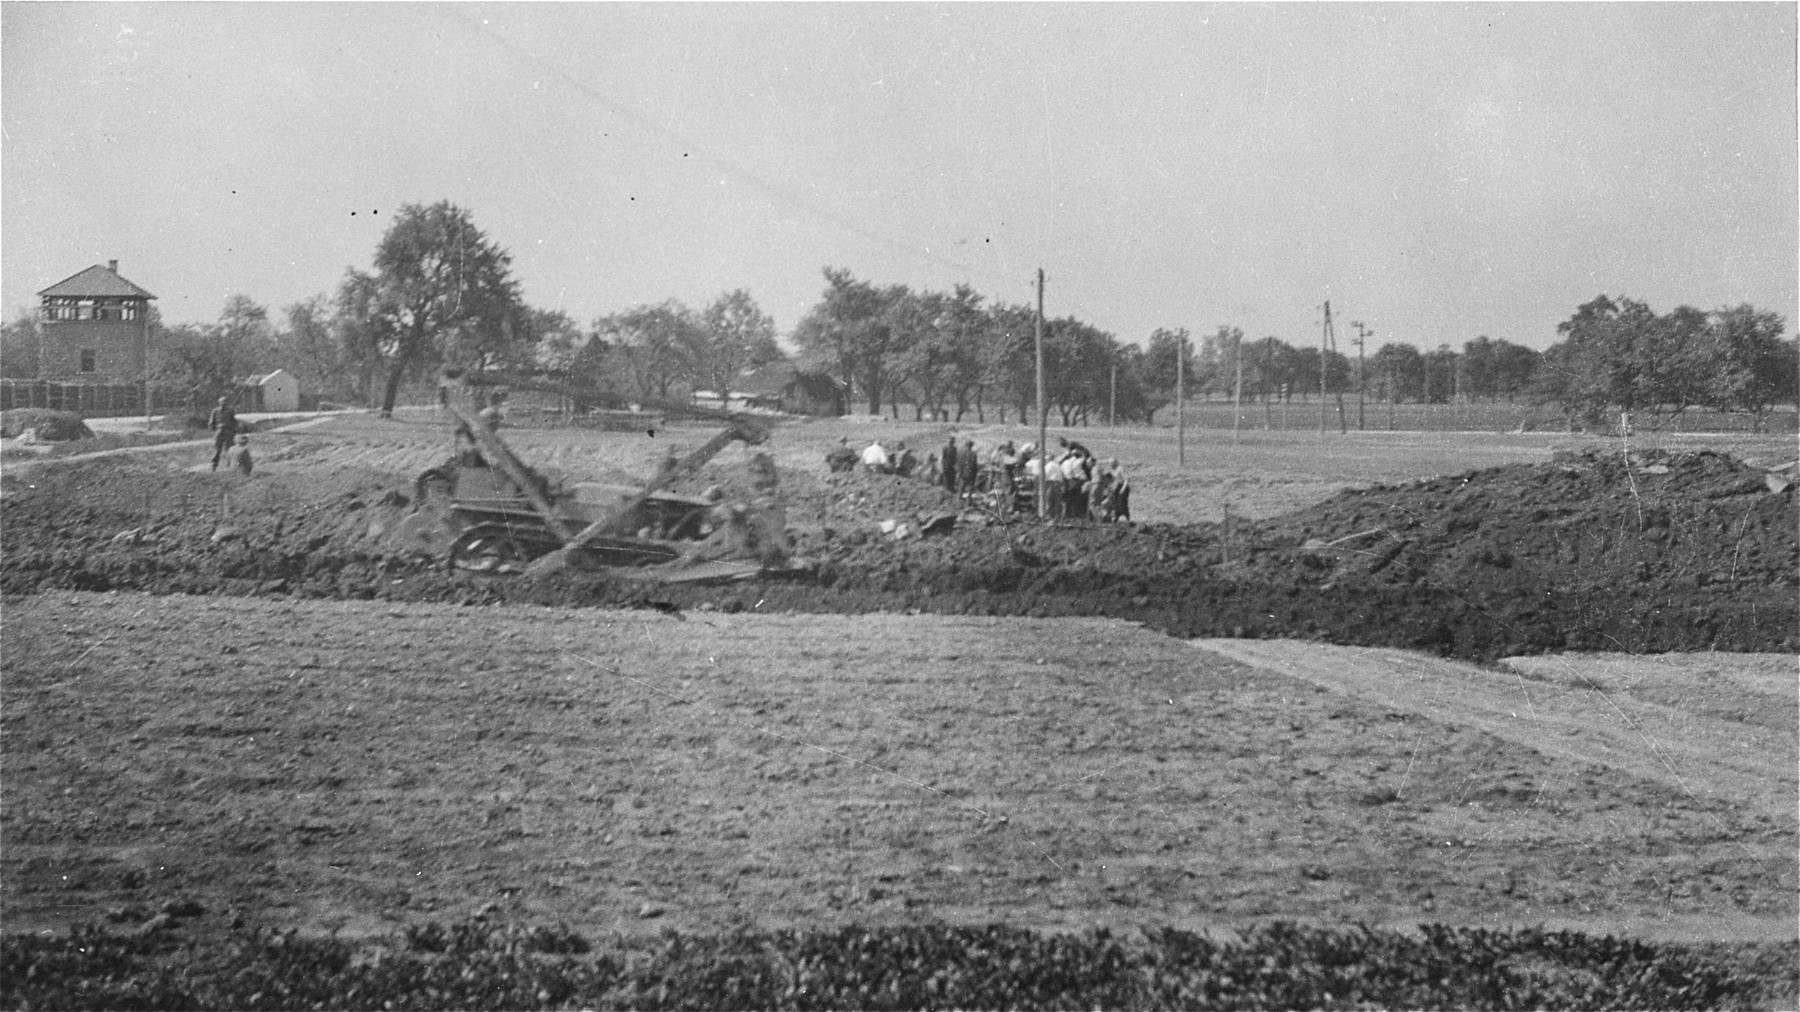 View of Austrian civilians preparing mass graves to bury former inmates in the Gusen concentration camp.